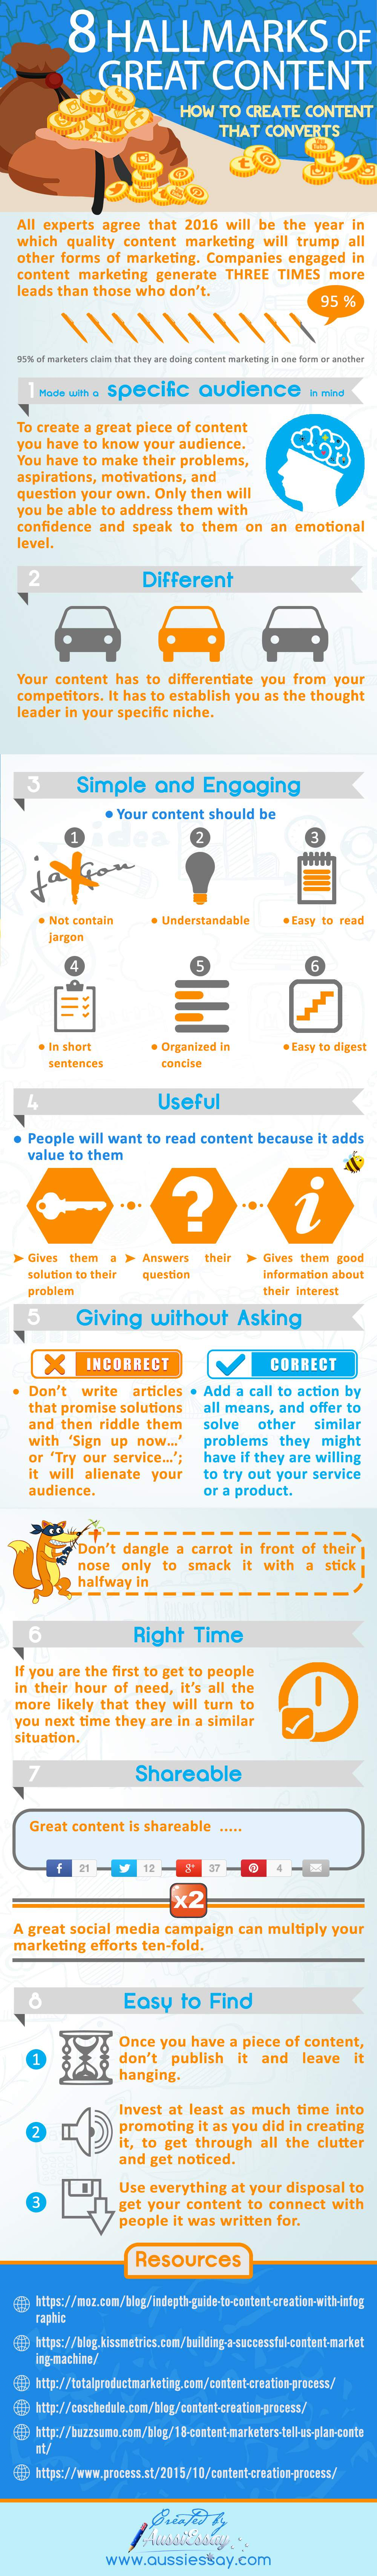 8 hallmarks of great content